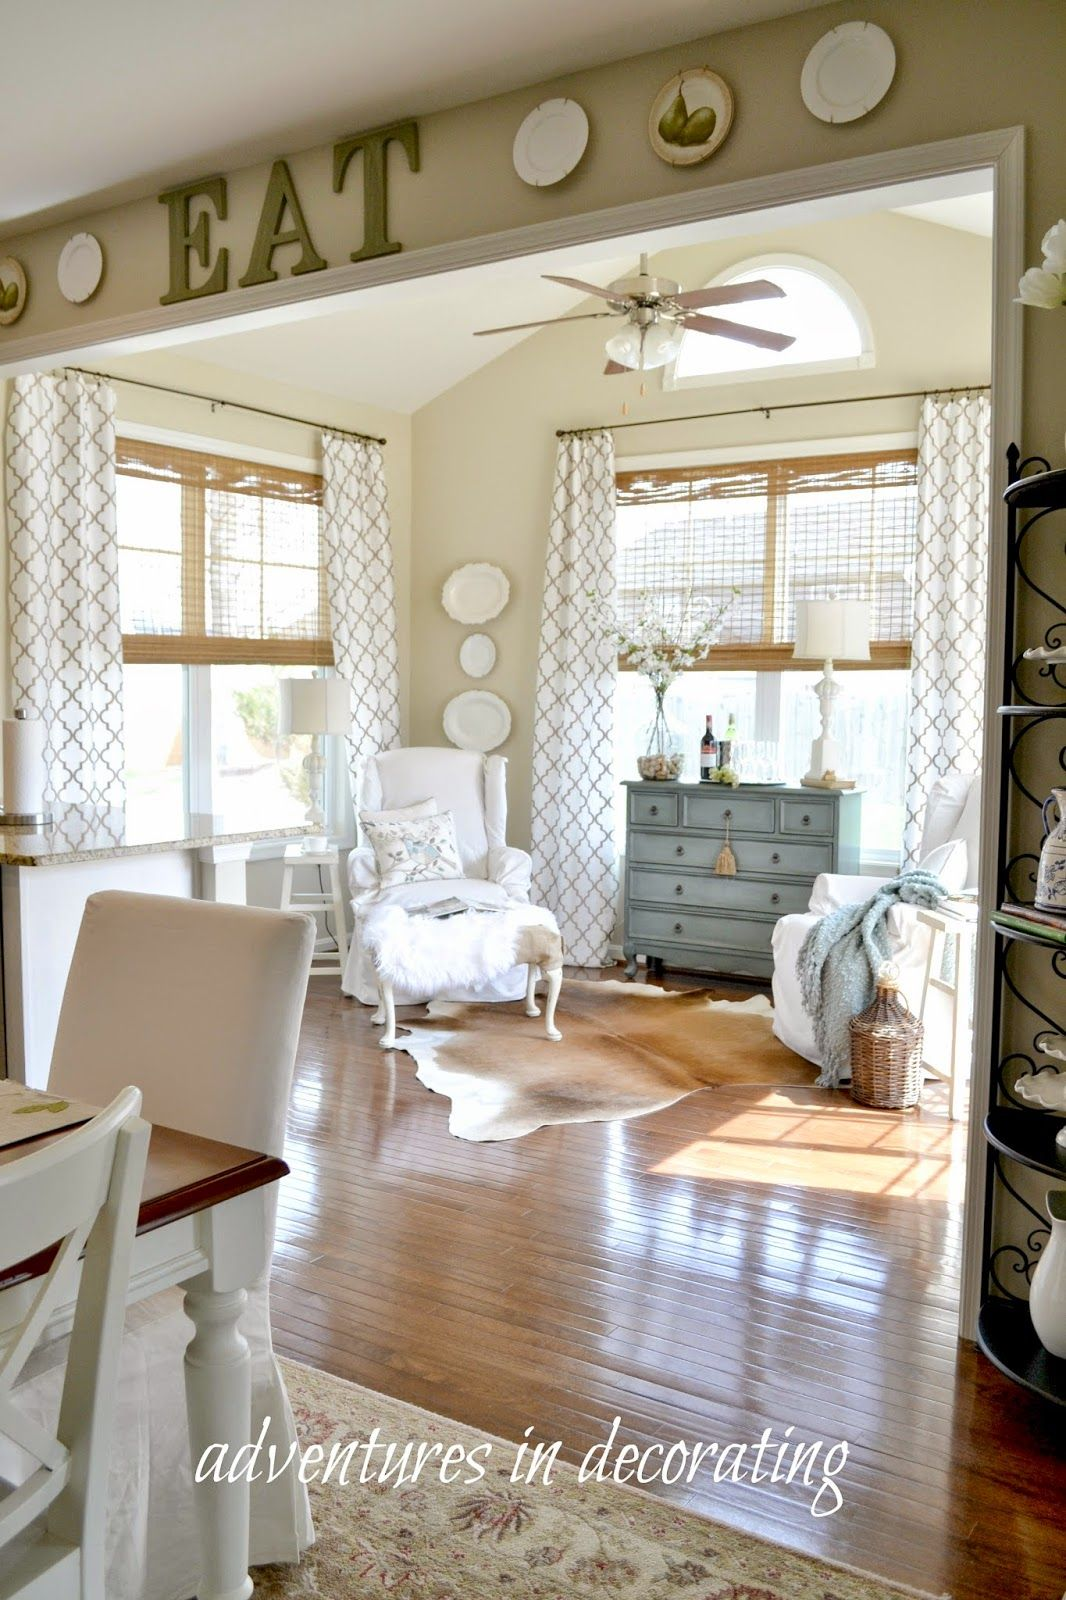 Superieur Adventures In Decorating I WANT A LITTLE SUNROOM JUST LIKE THIS OFF OUR  KITCHEN DINETTE AREA